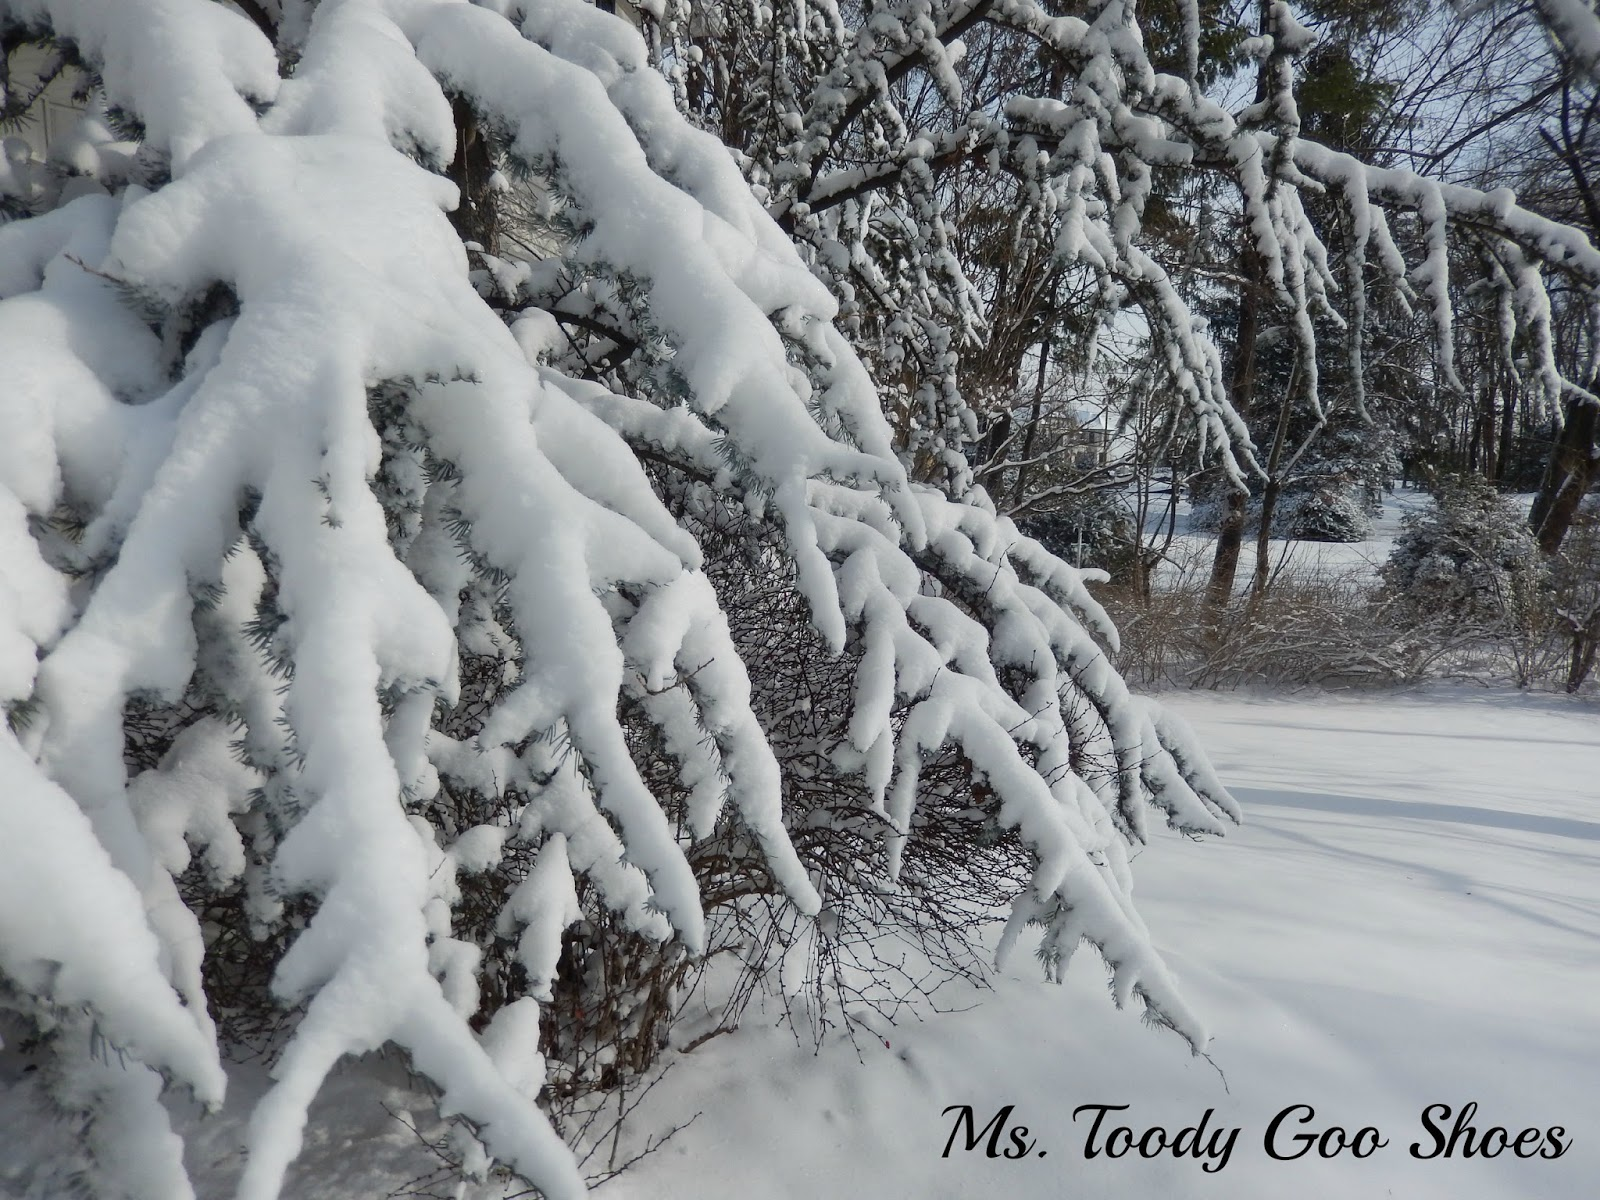 Snow Day --- by Ms. Toody Goo Shoes